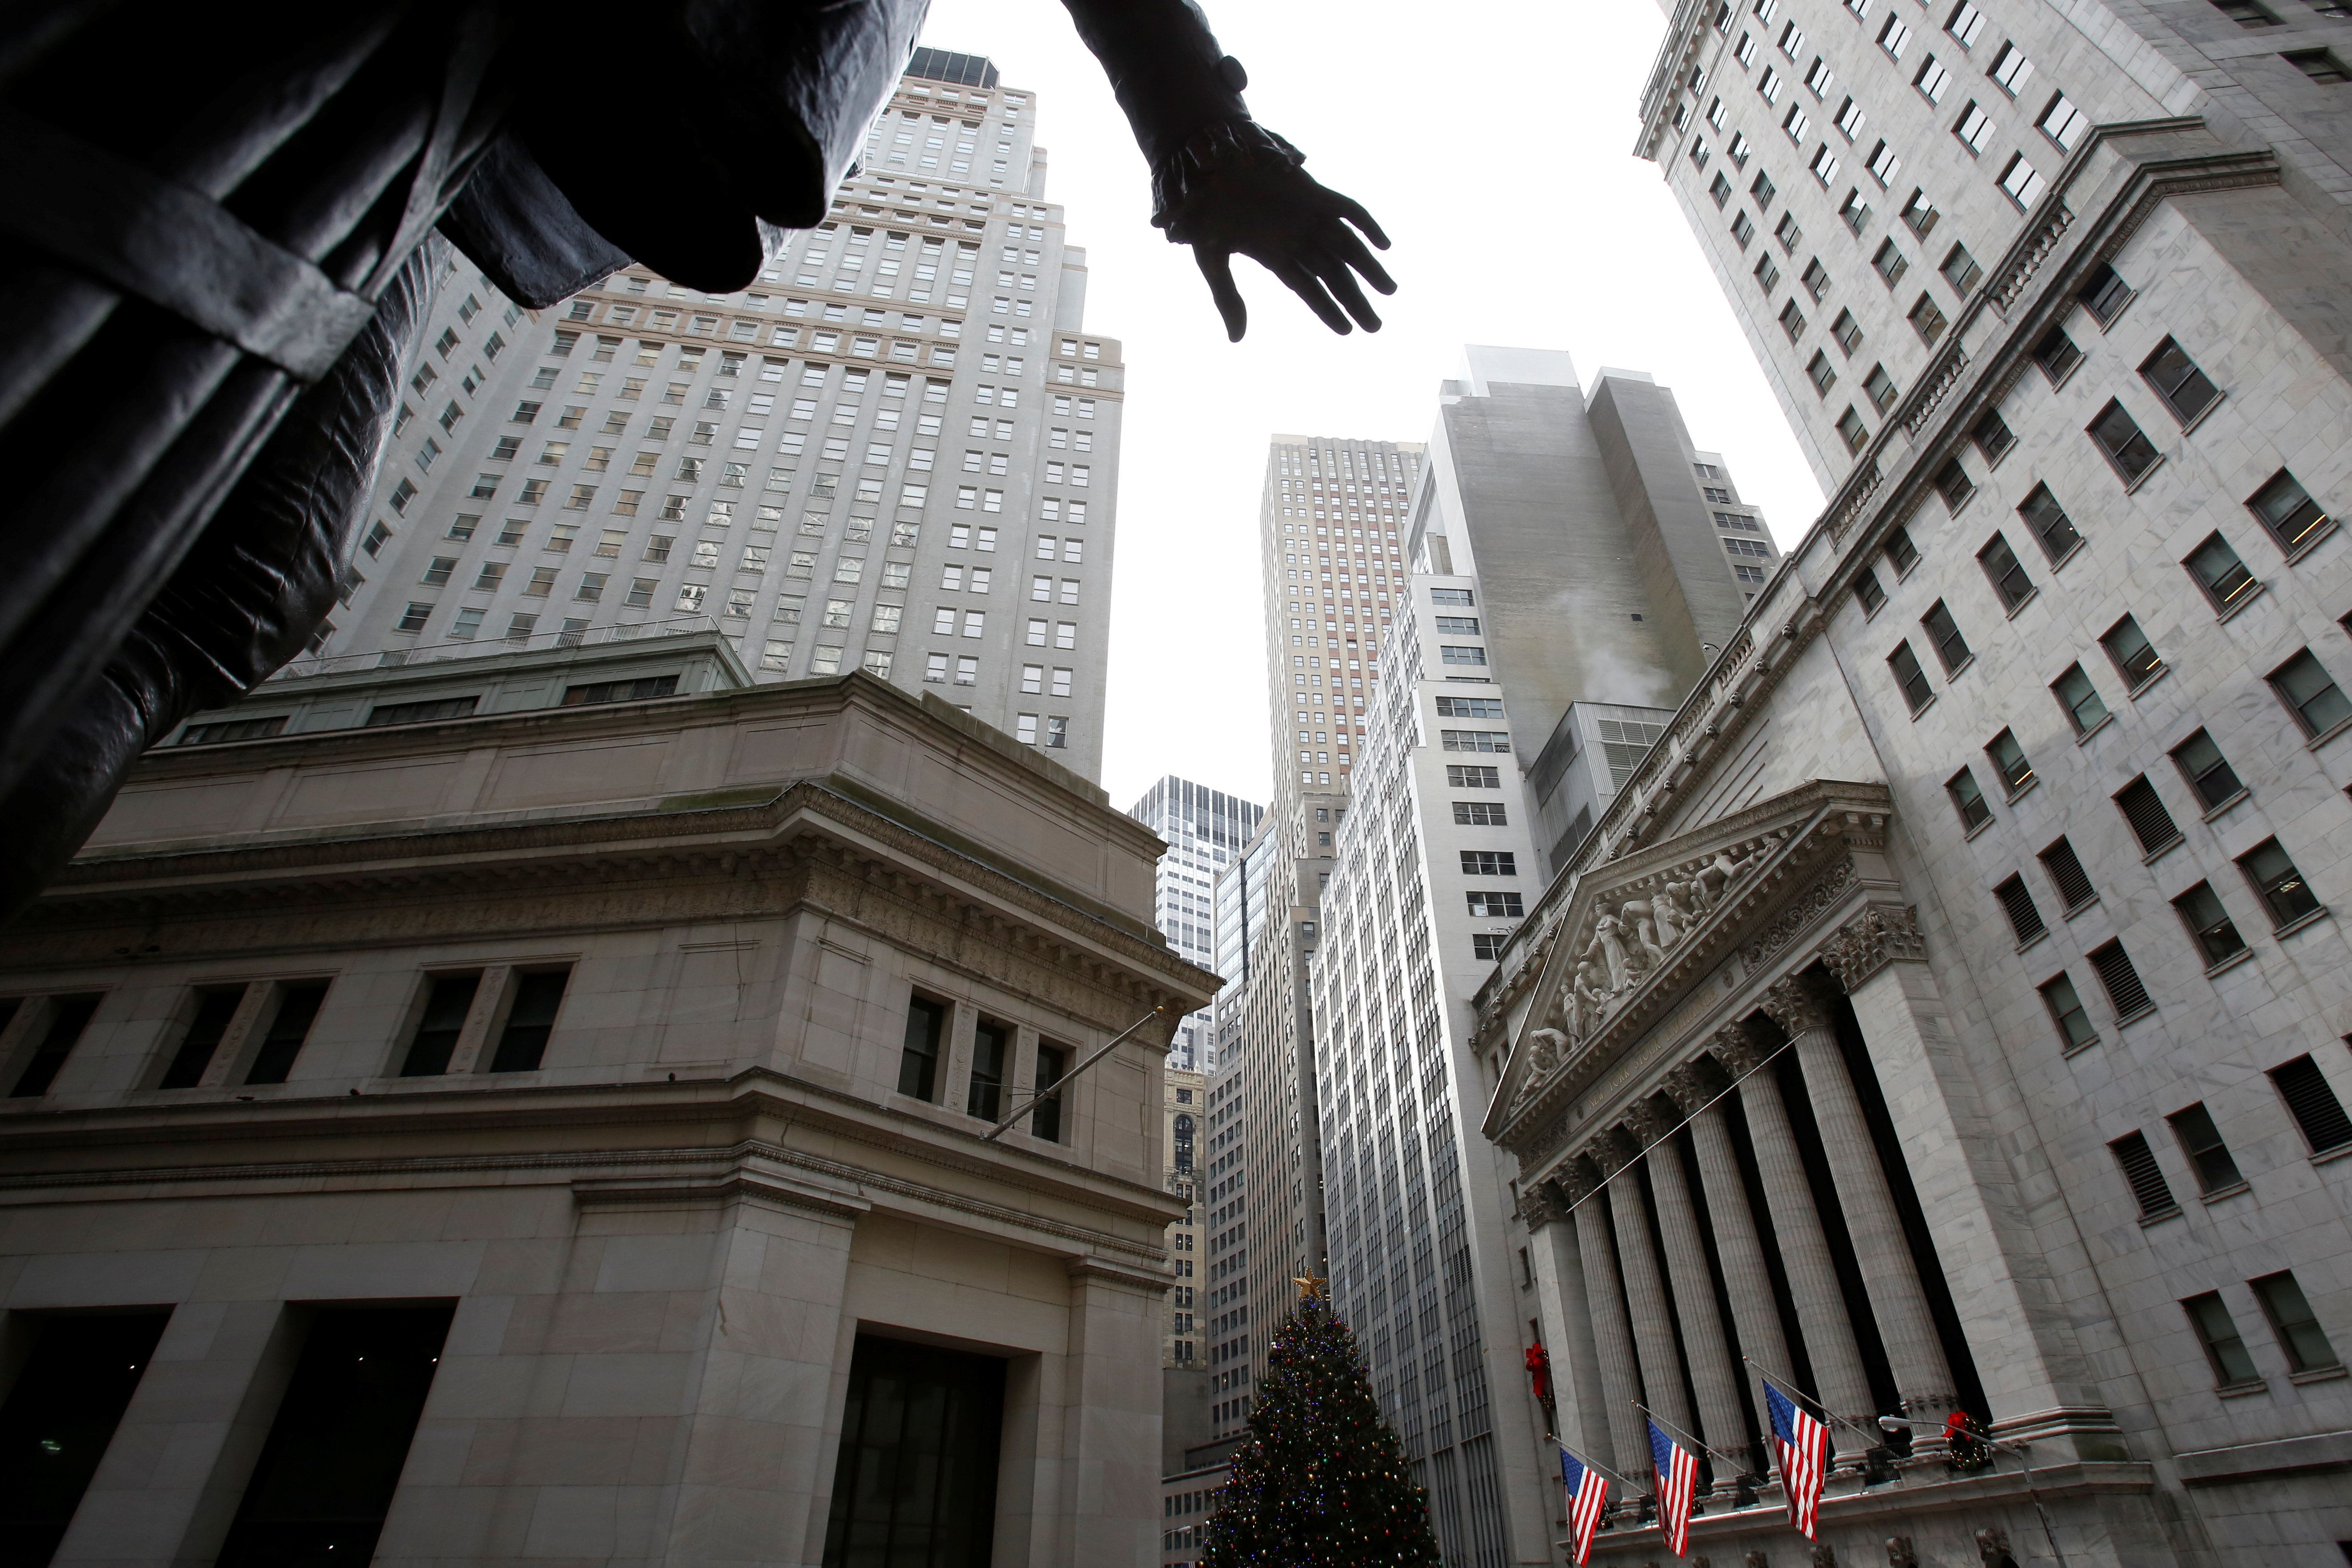 The New York Stock Exchange in New York City. Traditional ways of economic thinking aren't sufficient to deal with the c